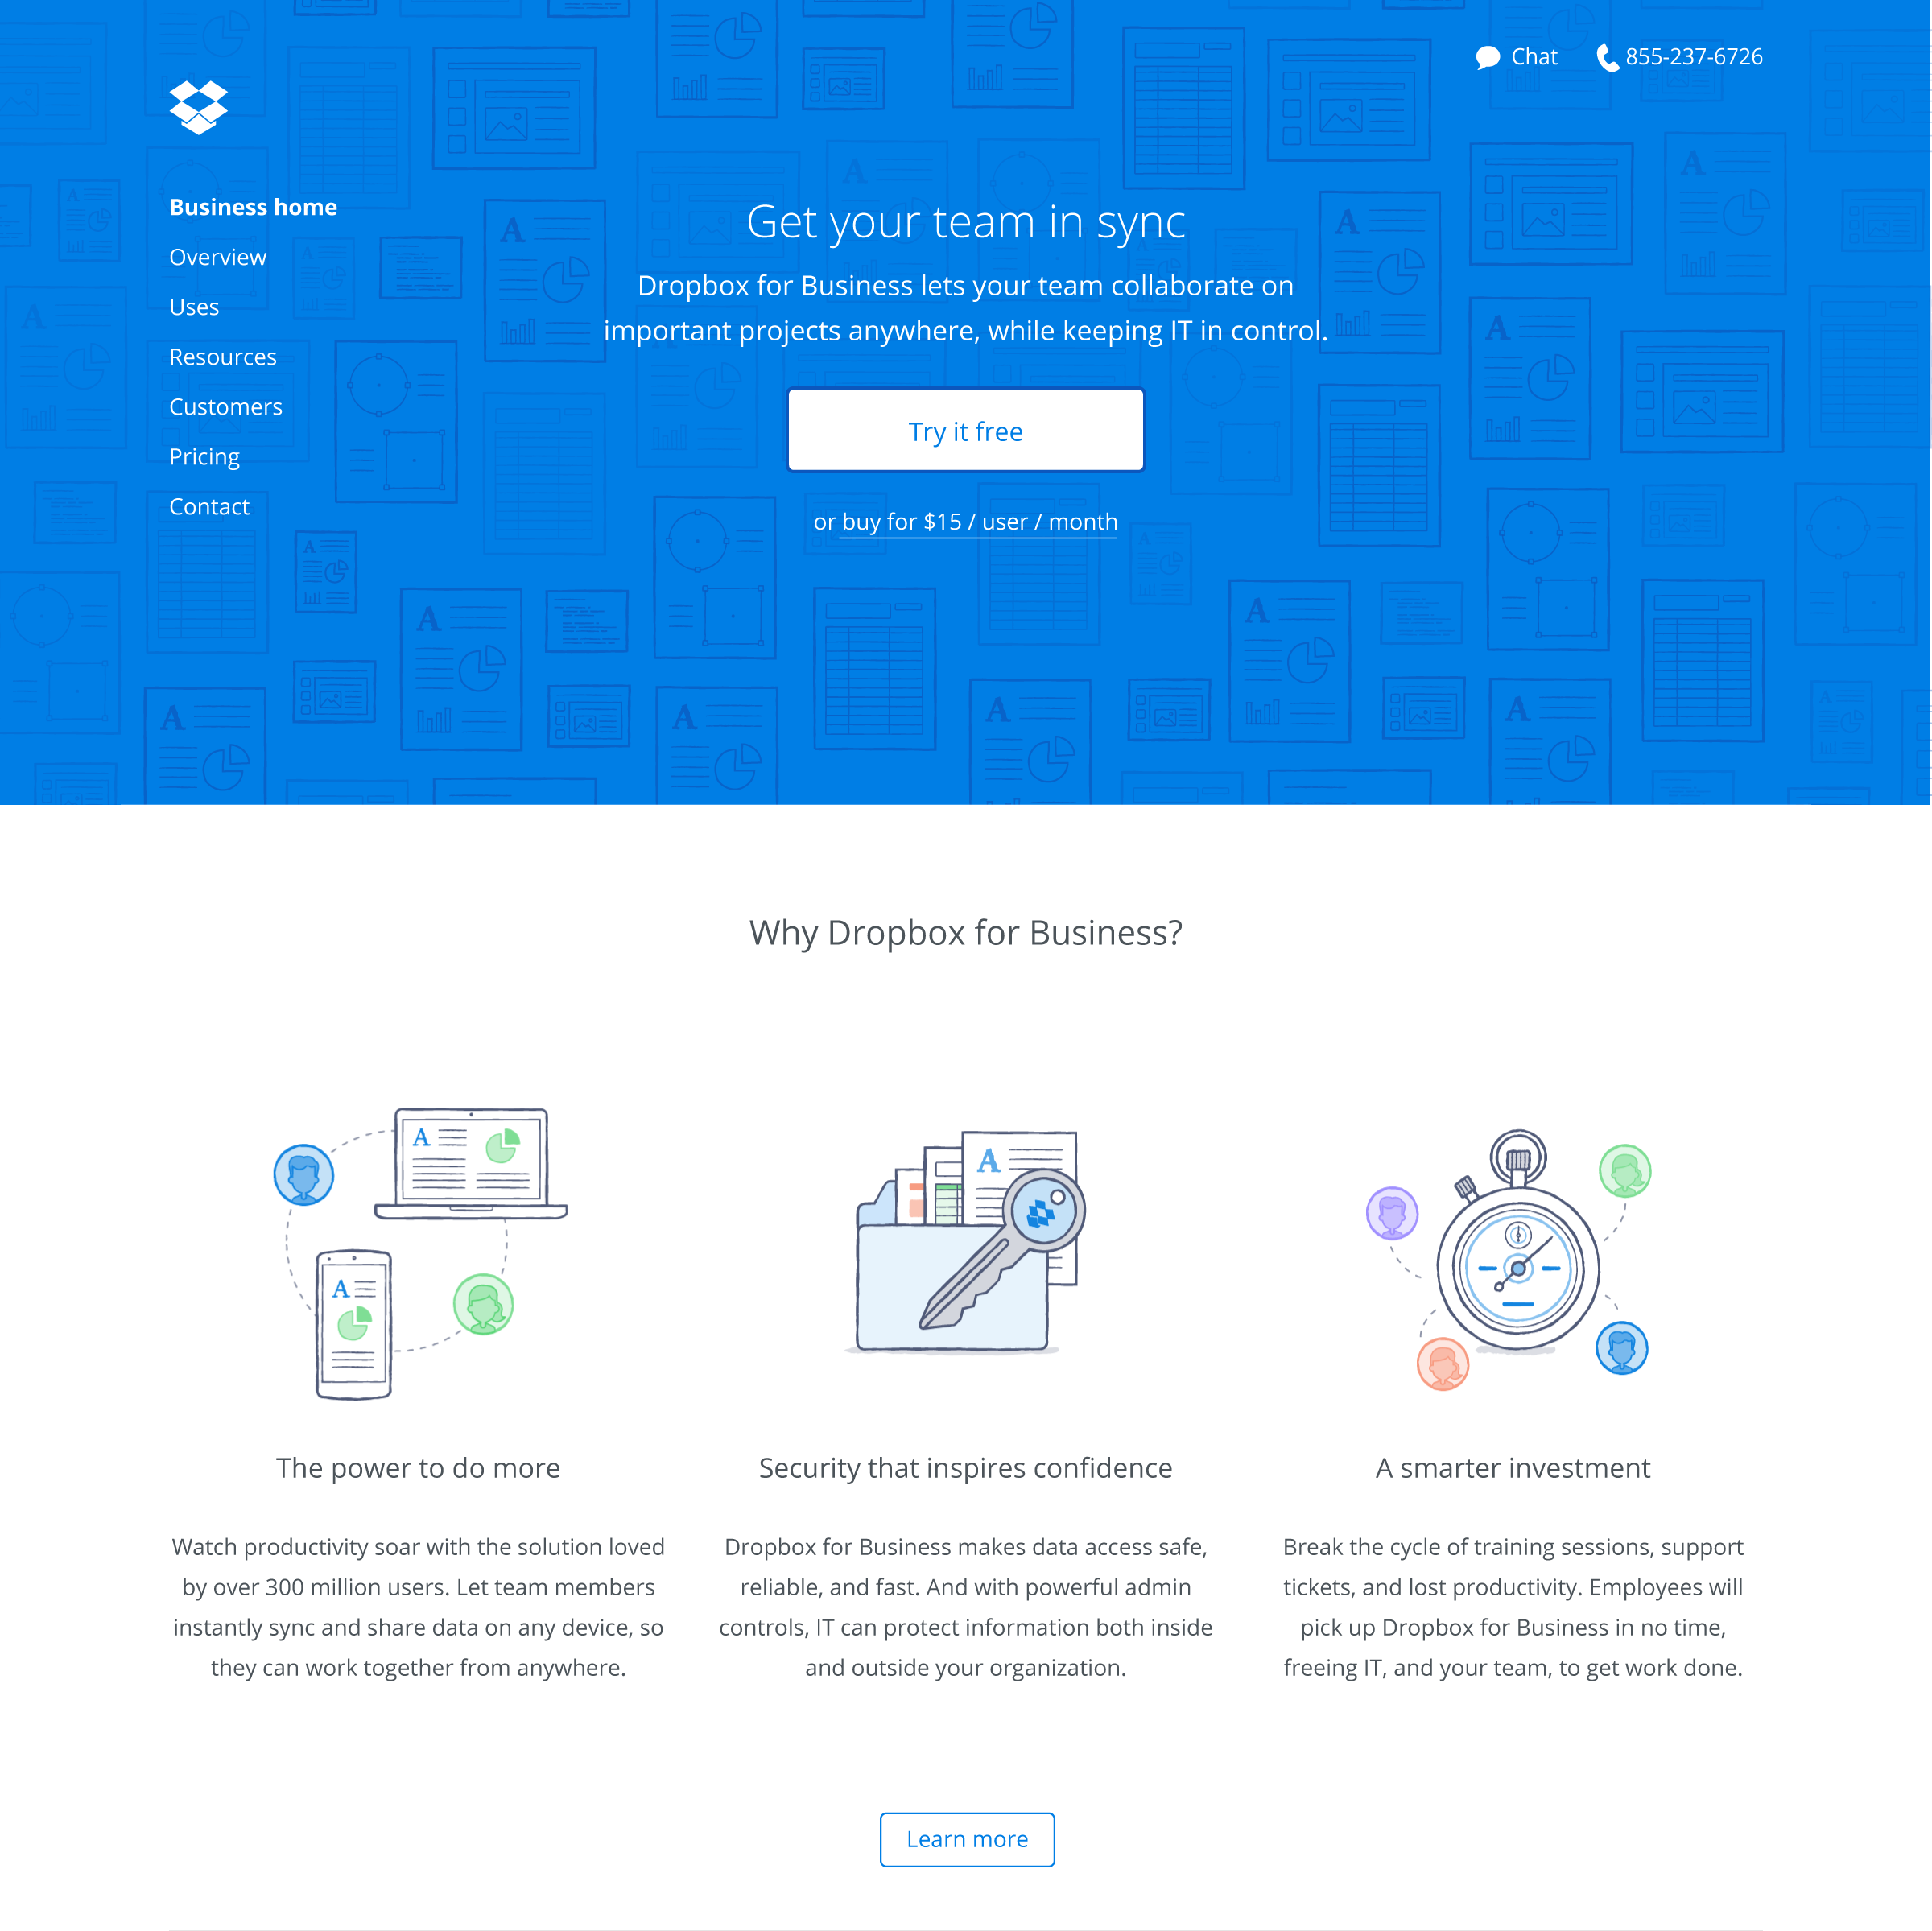 The July 2014 redesign of Dropbox's website is intended to appeal to enterprise customers.